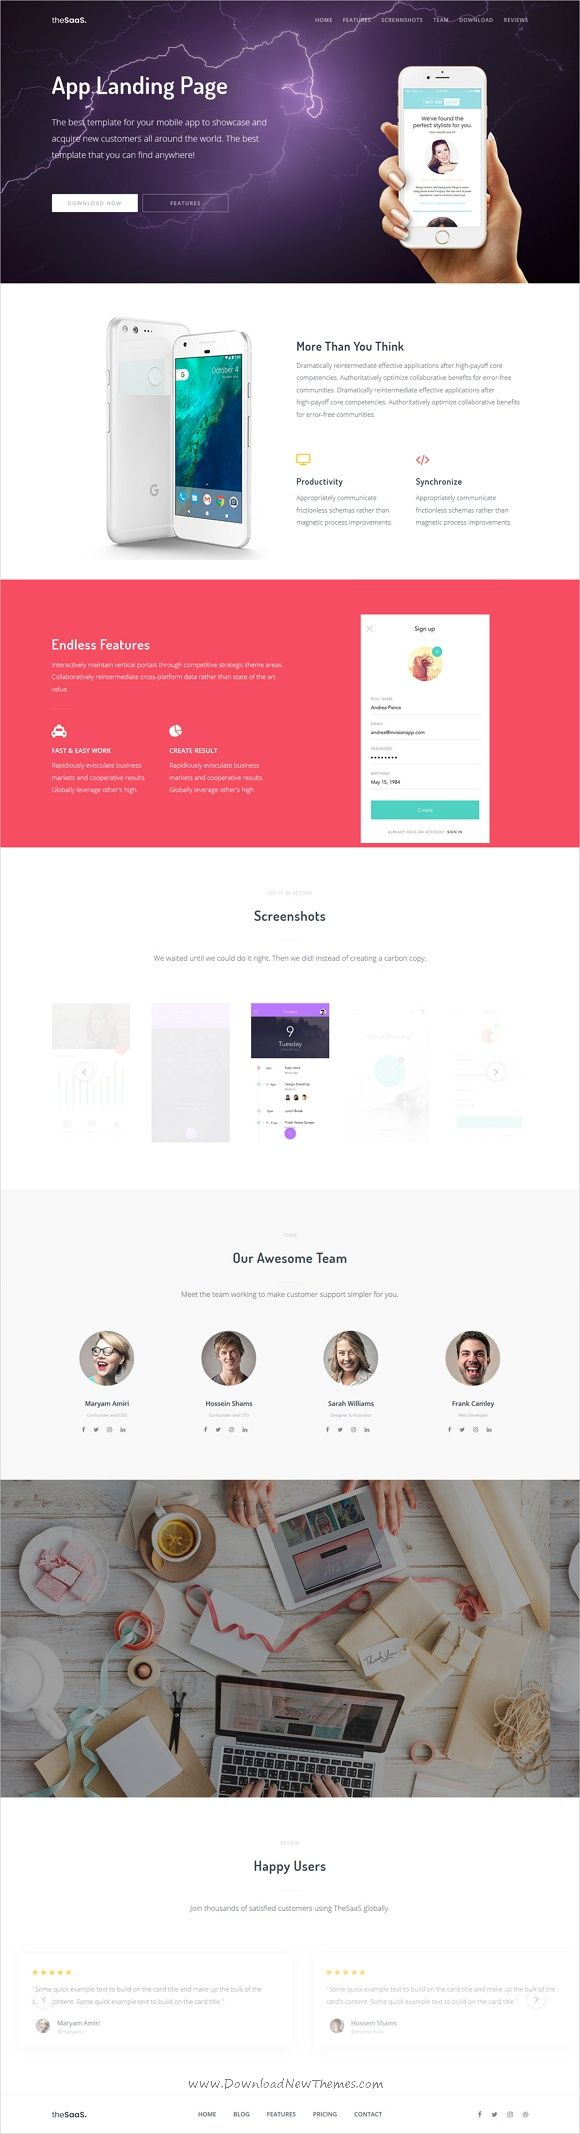 Magnificent 1.25 Button Template Thin 12 Piece Puzzle Template Flat 1st Time Job Resume 2.25 Button Template Young 2007 Word Templates Coloured2015 Calendar Template Microsoft 607 Best Images About Best Responsive Landing Page Template On ..